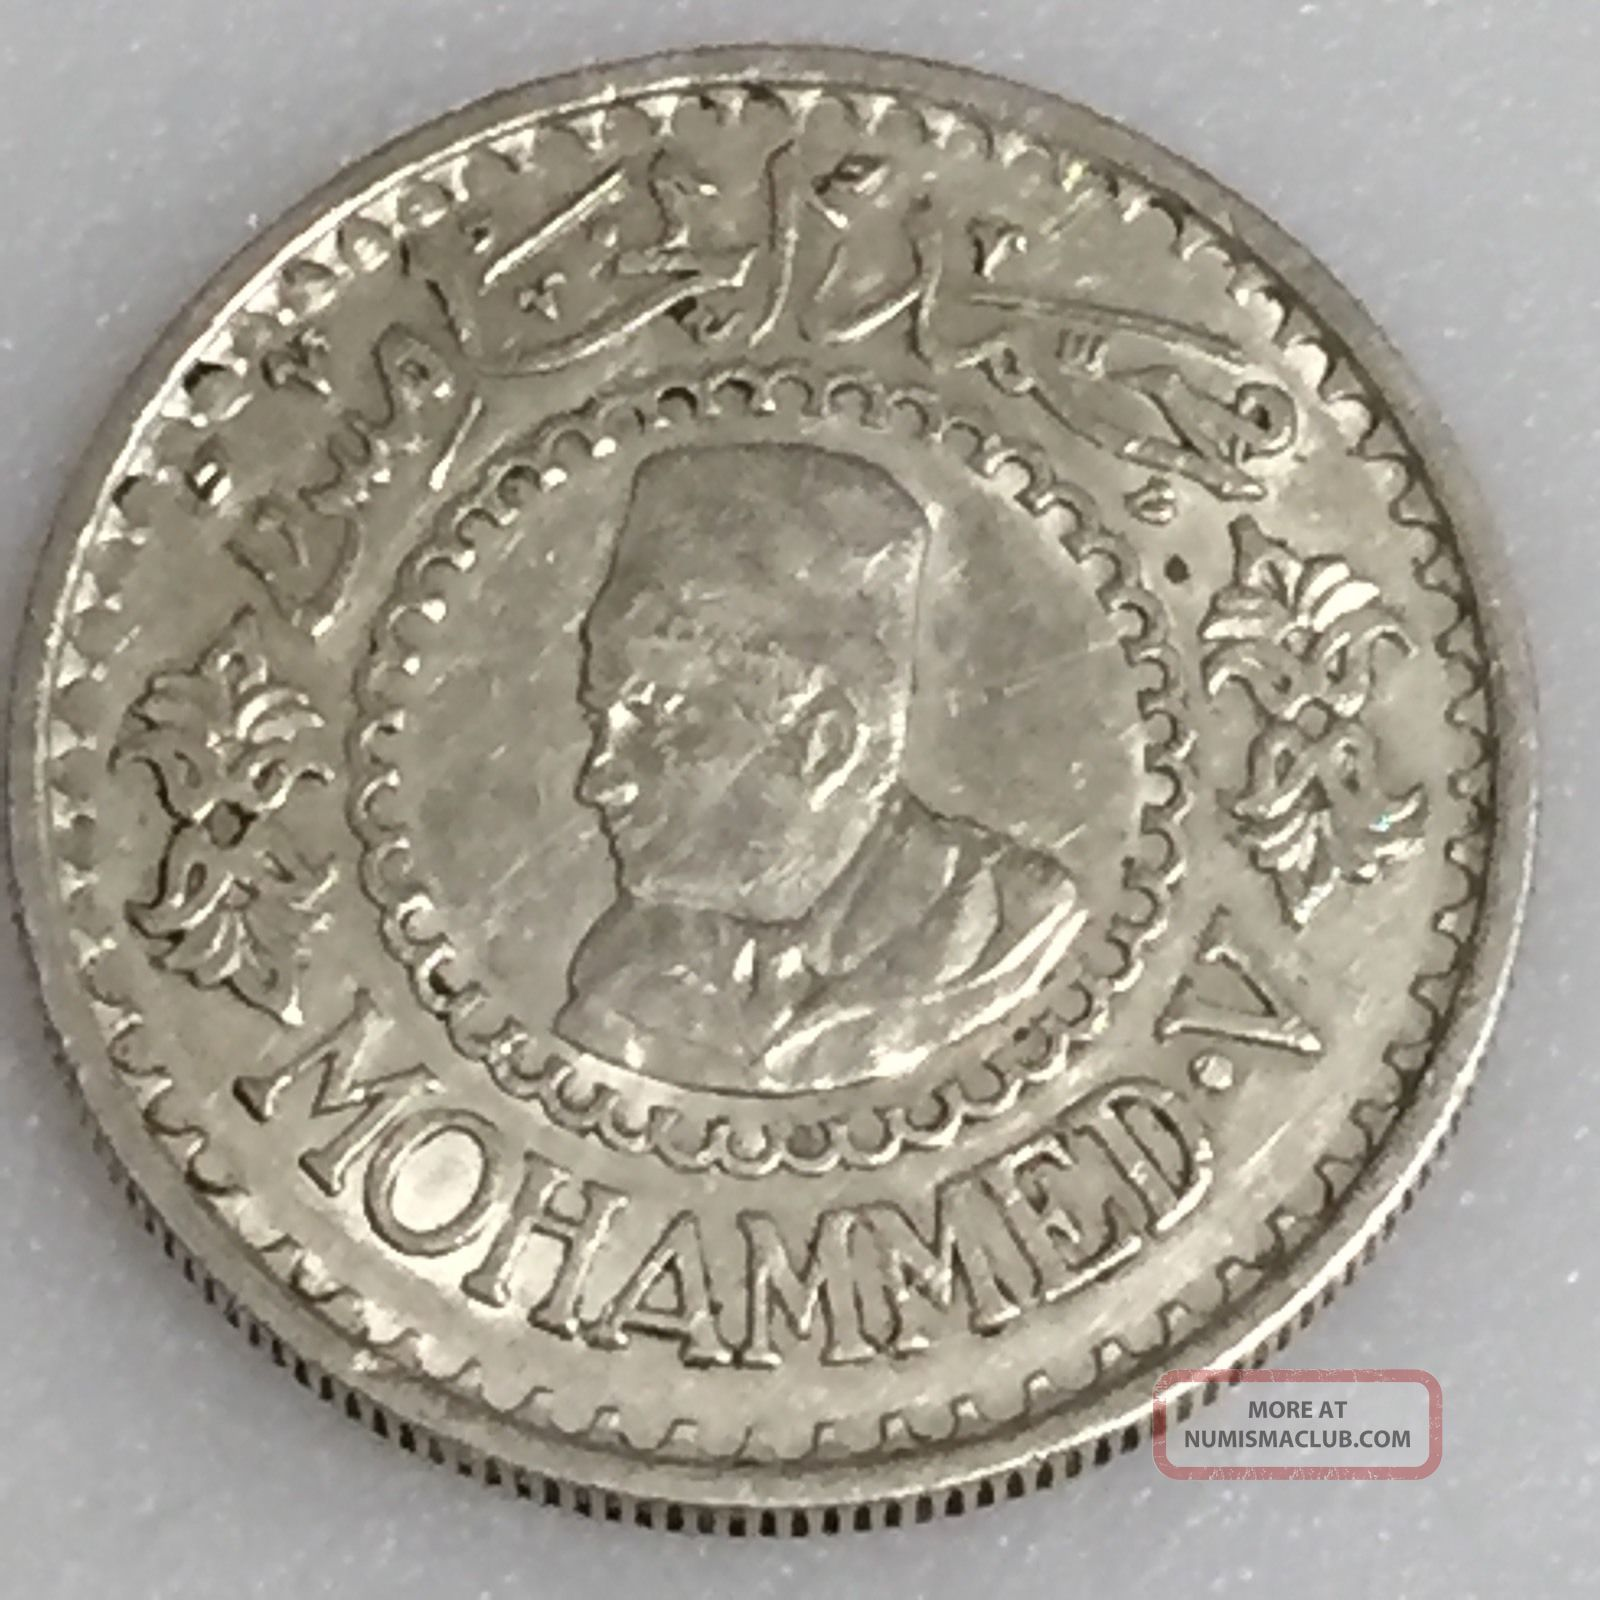 Ah1353 Morocco 1956/ah1376 500 Francs Au/unc Silver Coin Hard To Find Morocco photo